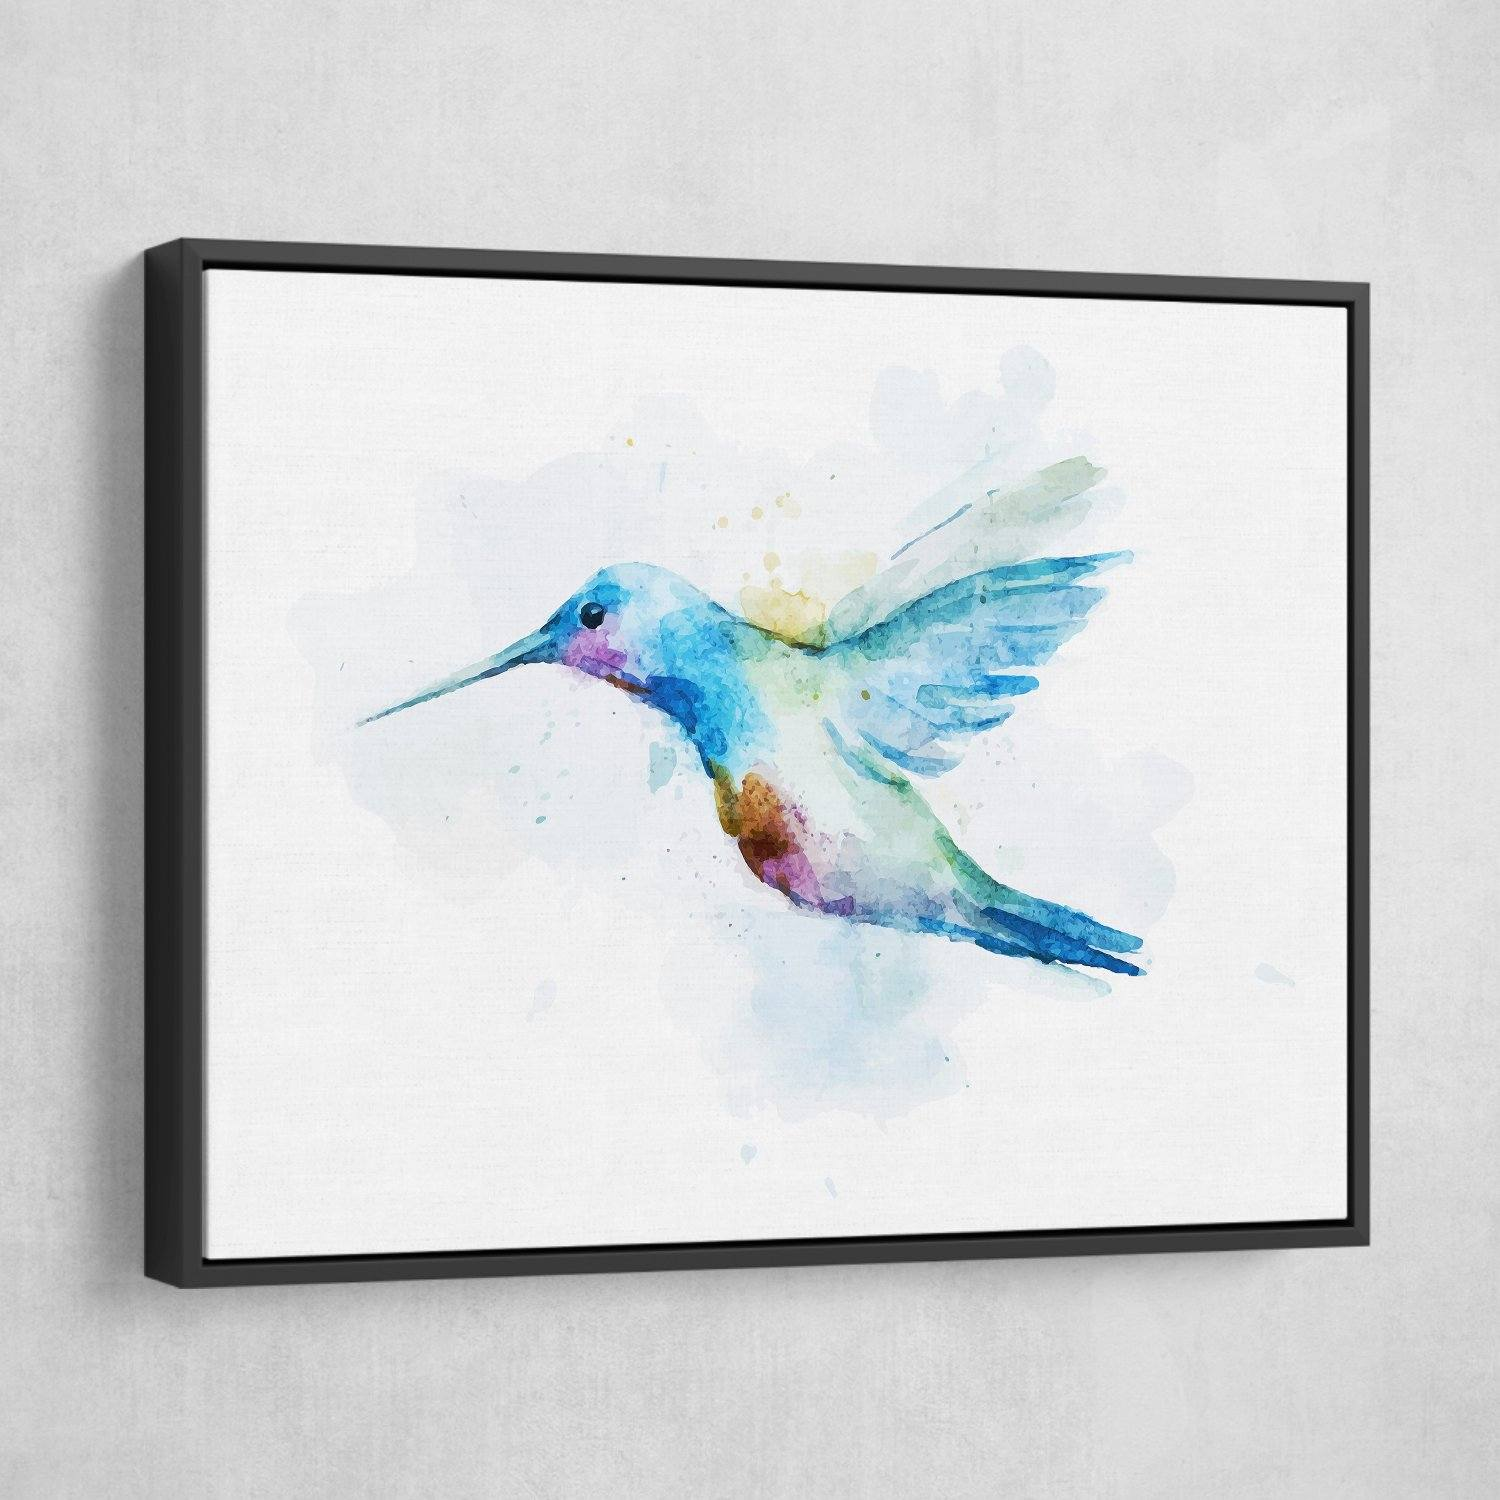 Watercolor bird wall art with frame